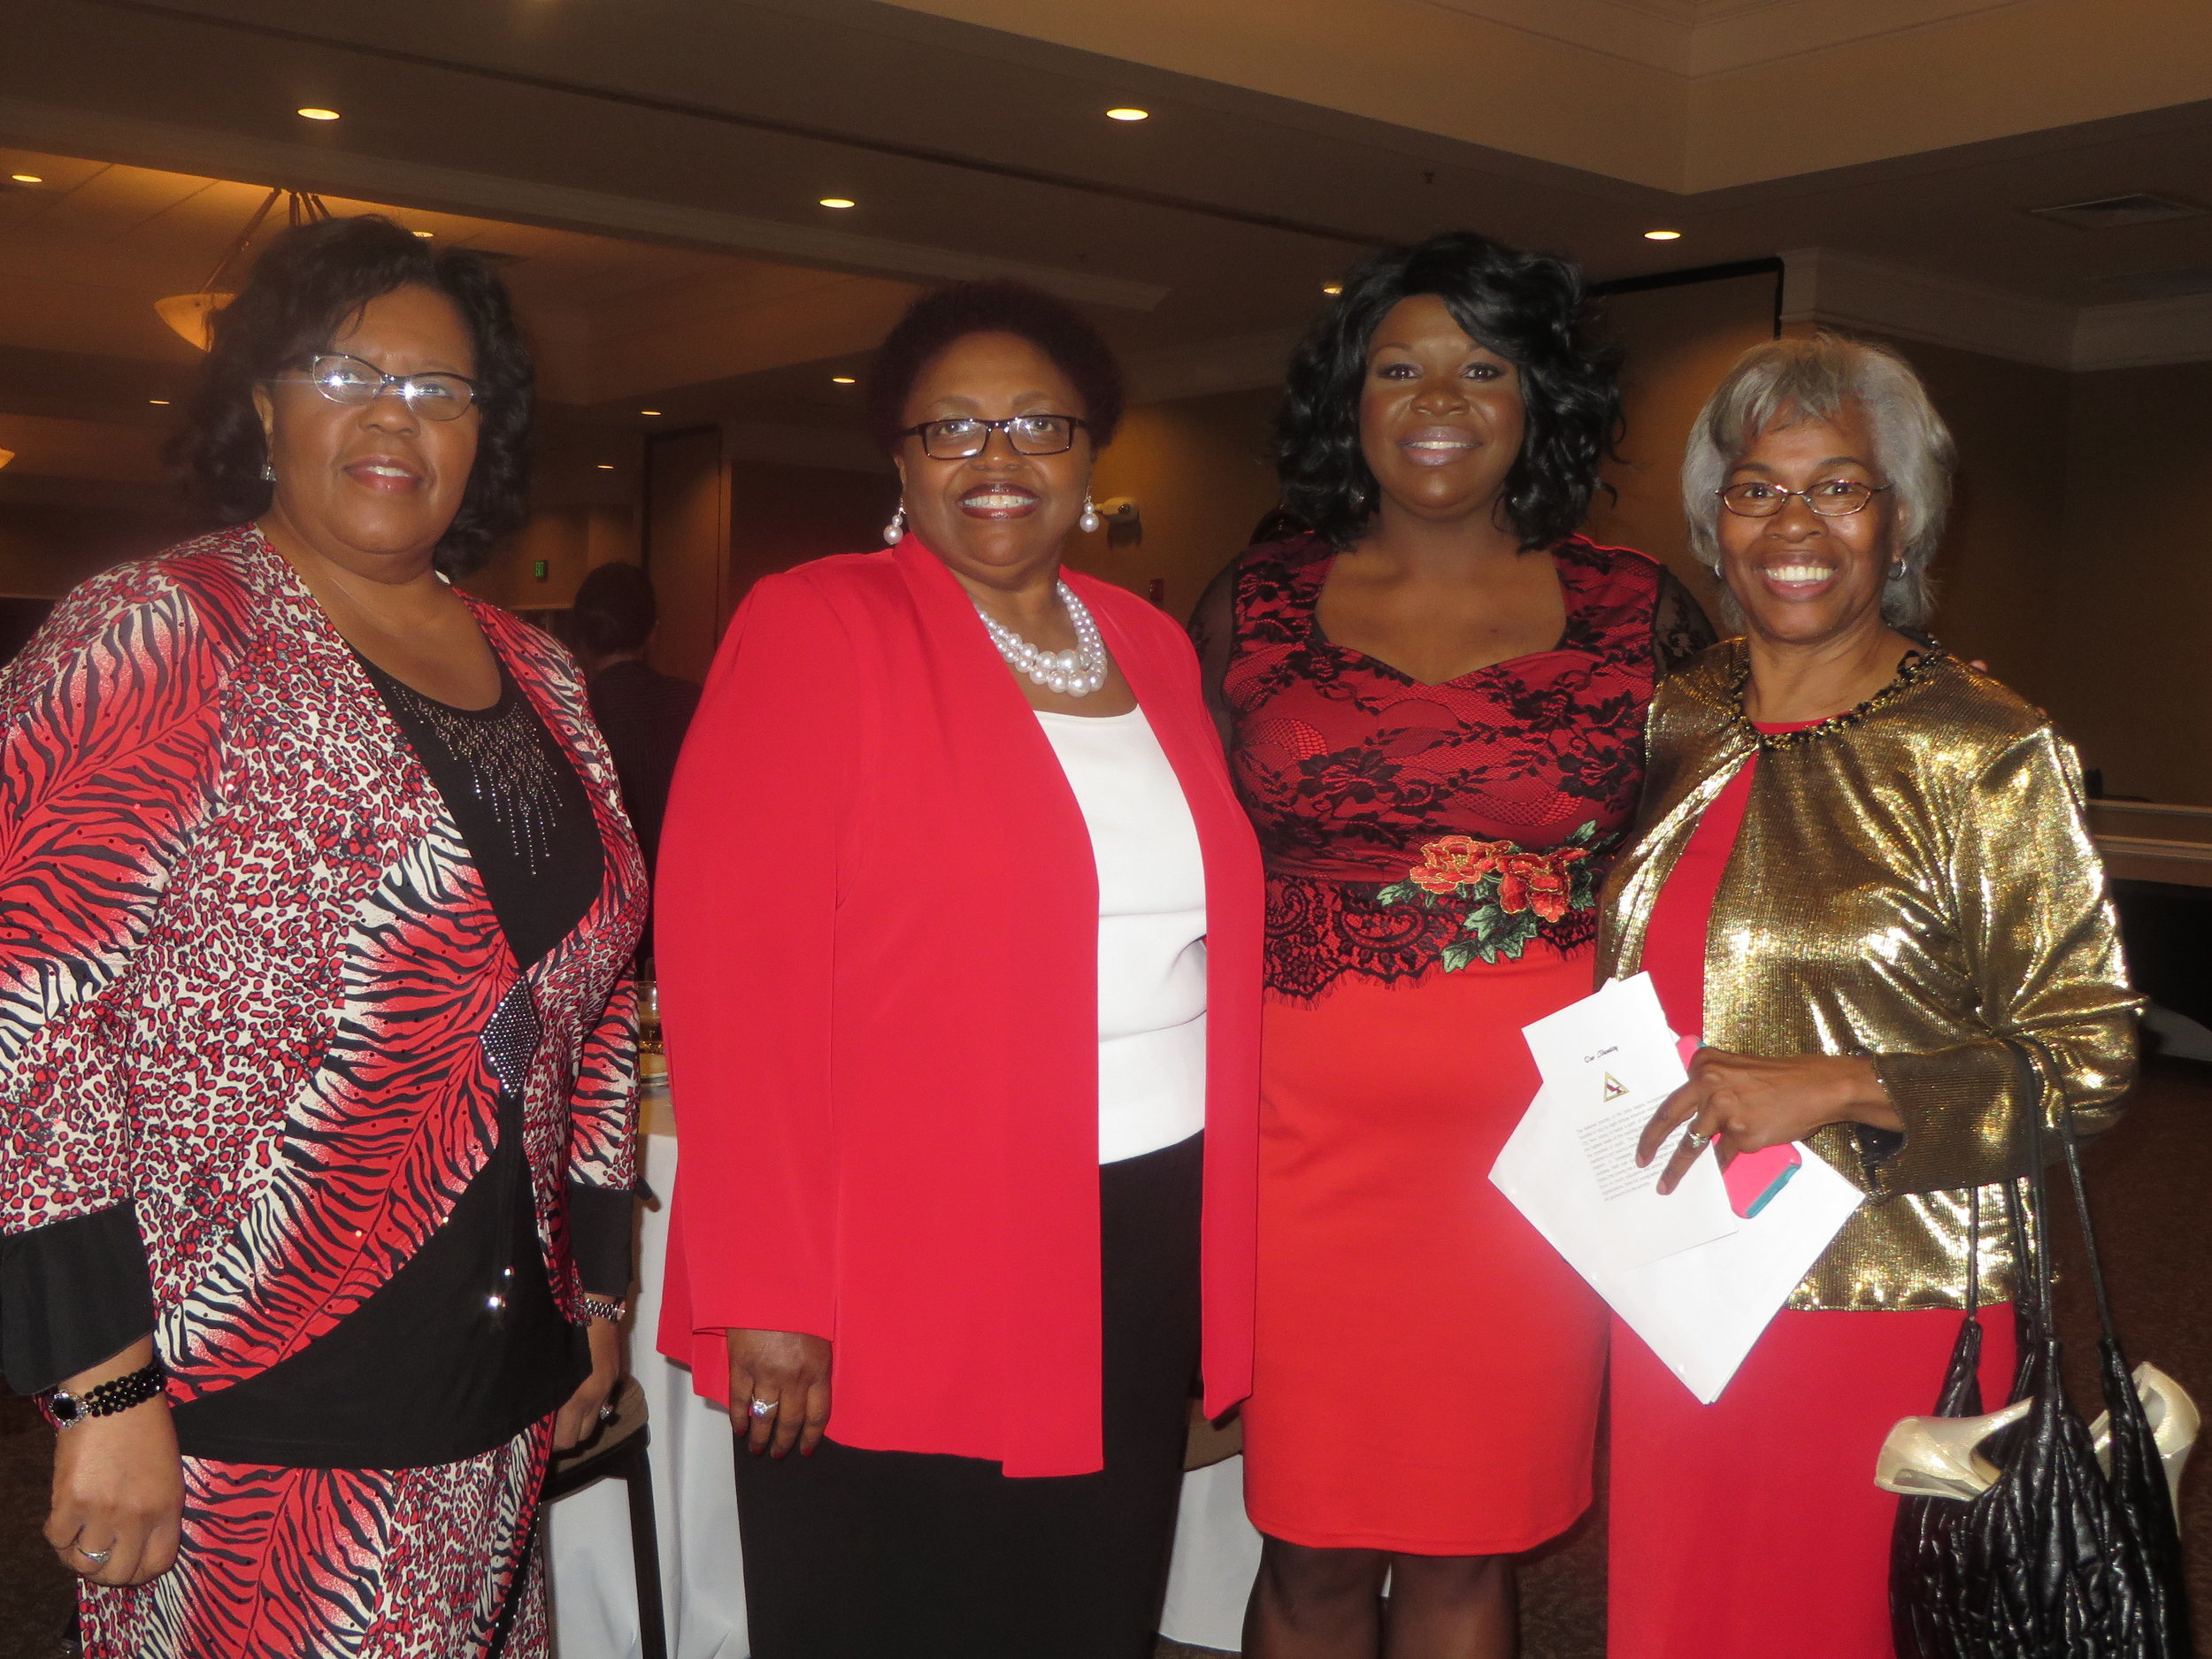 Patricia Taylor, Co-Chair; Roslyn Wilson, President and Co-Chair; Laurice Lanier-Trowell, Speaker; andPatricia Porter